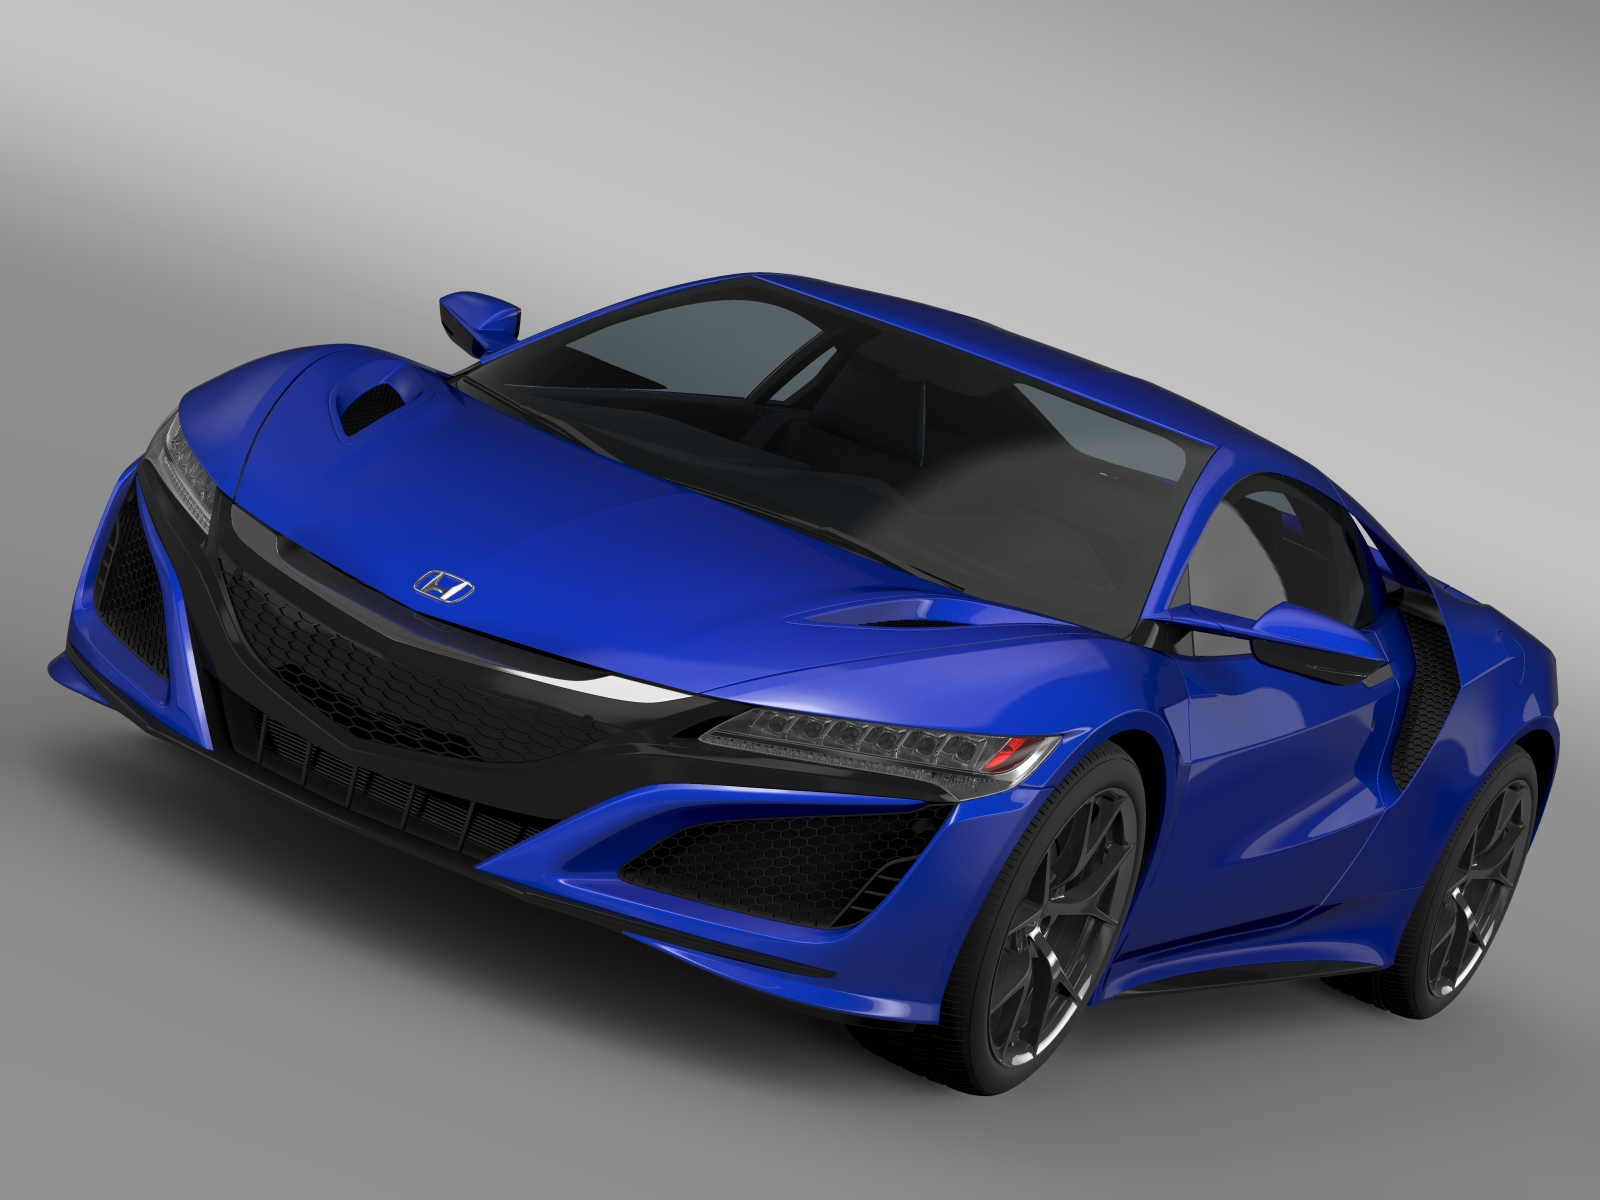 Honda nsx 2016 3d model buy honda nsx 2016 3d model for Honda 2016 models